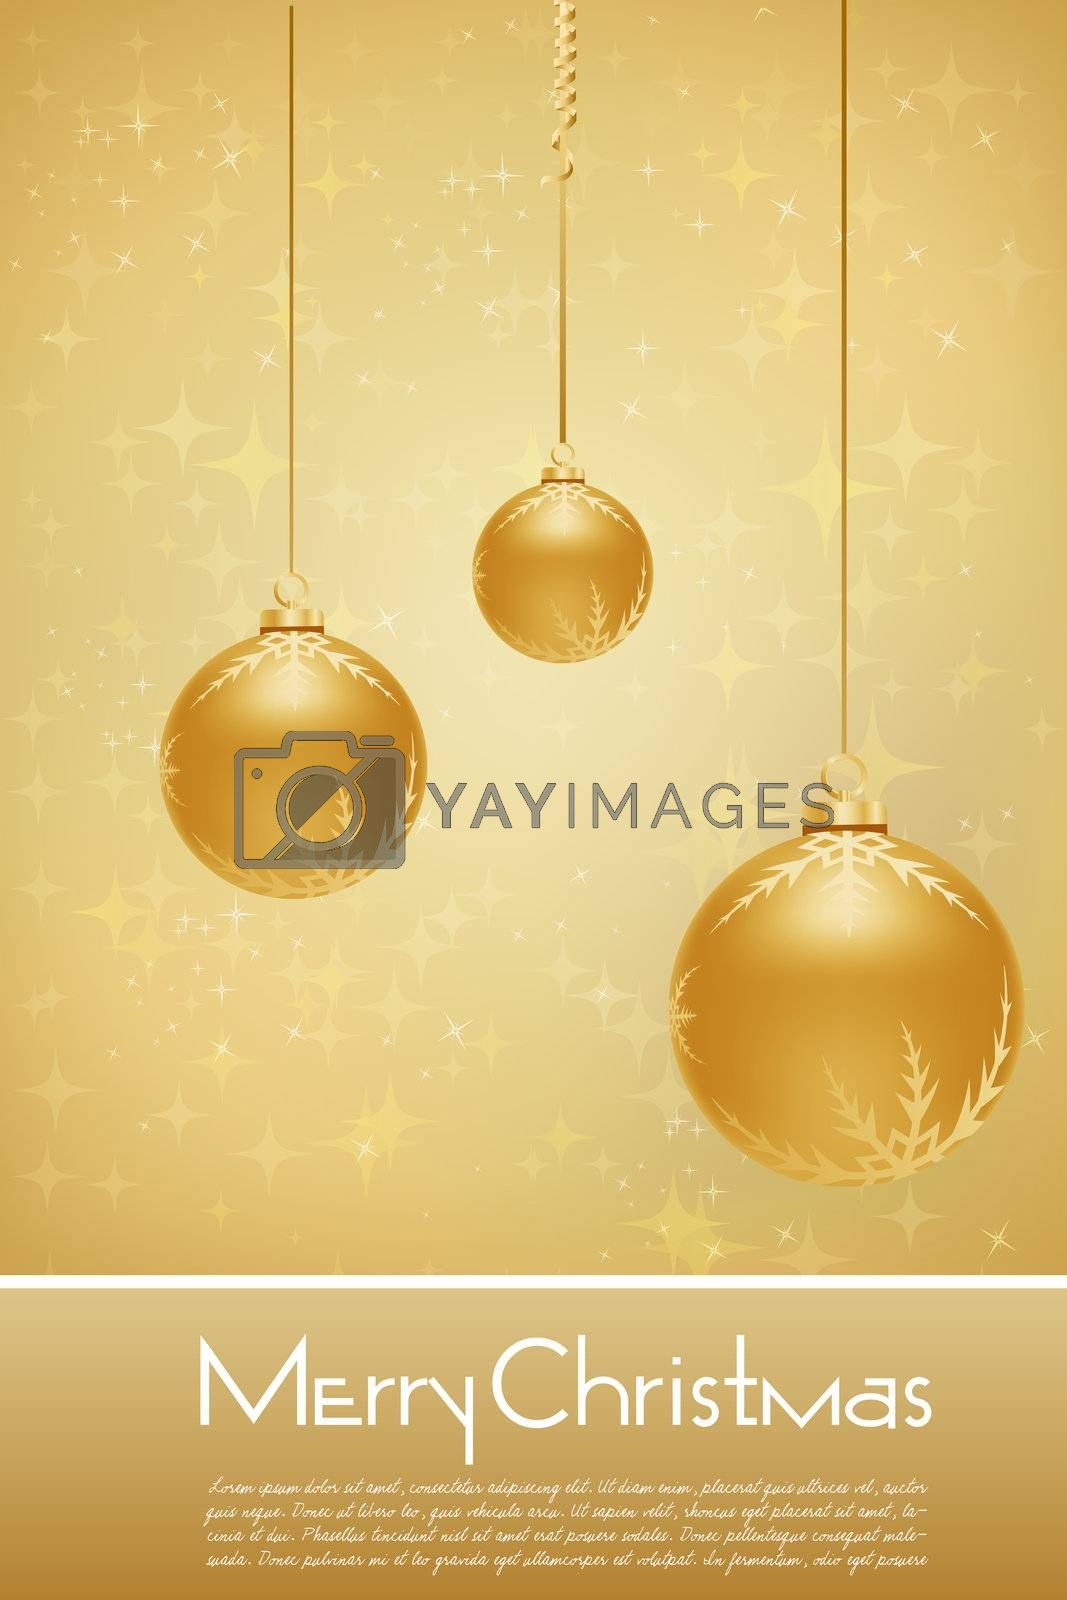 Royalty free image of golden merry christmas card by get4net